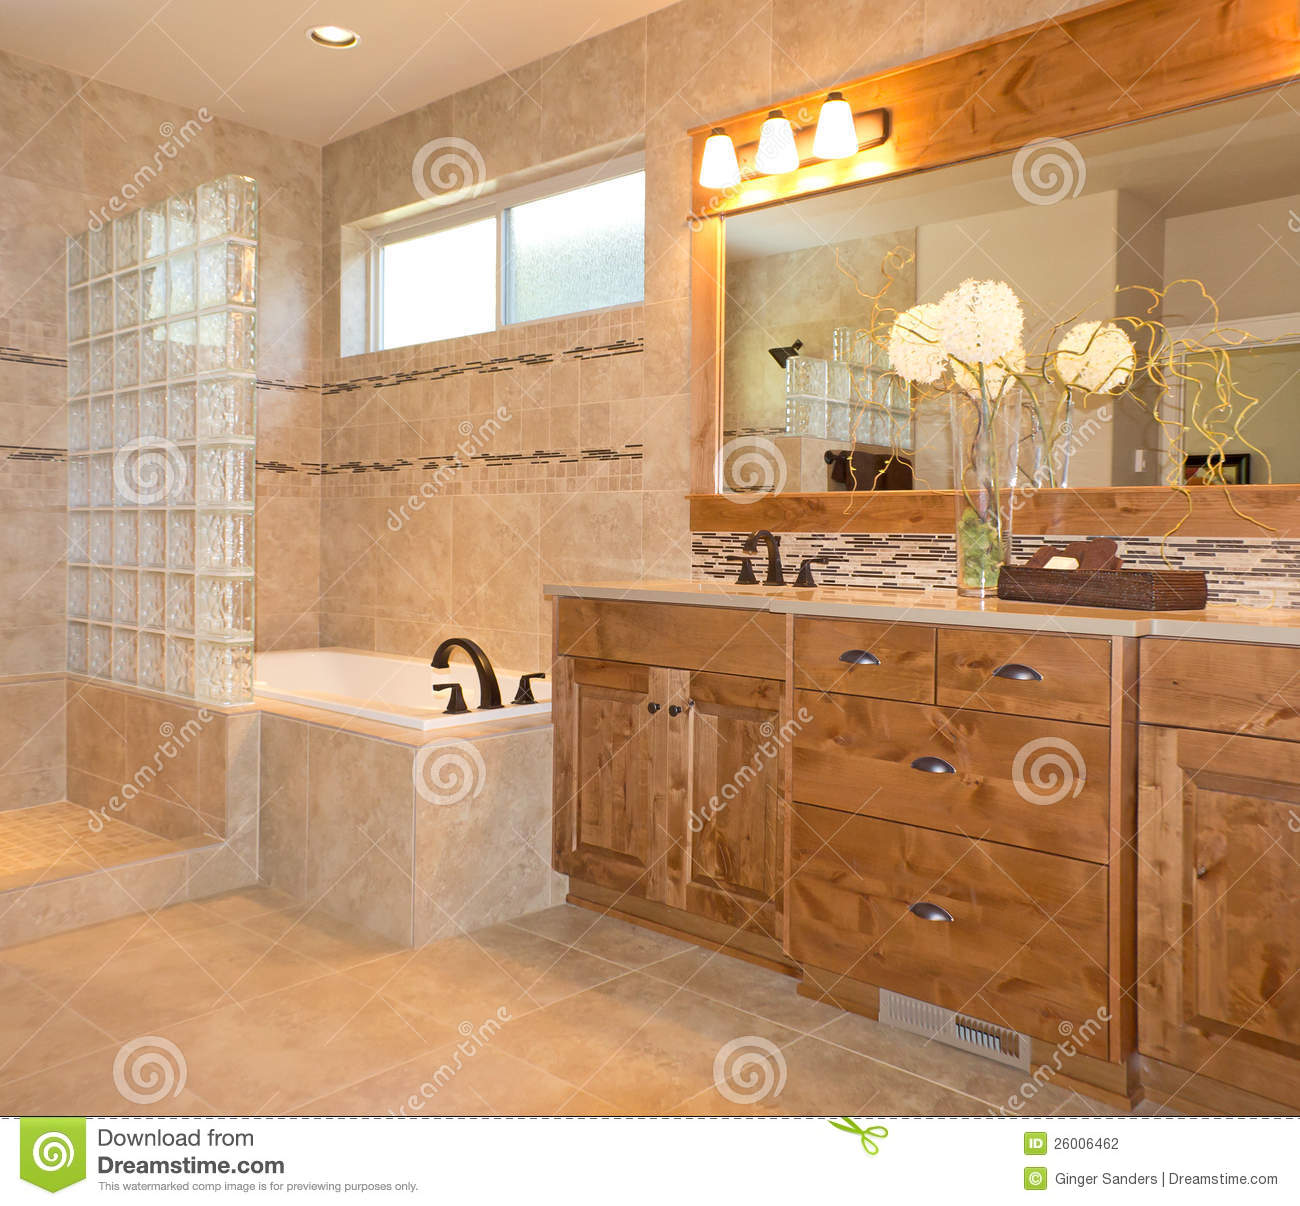 Luxury Tile Bathroom In Beige And Gold Stock Photography